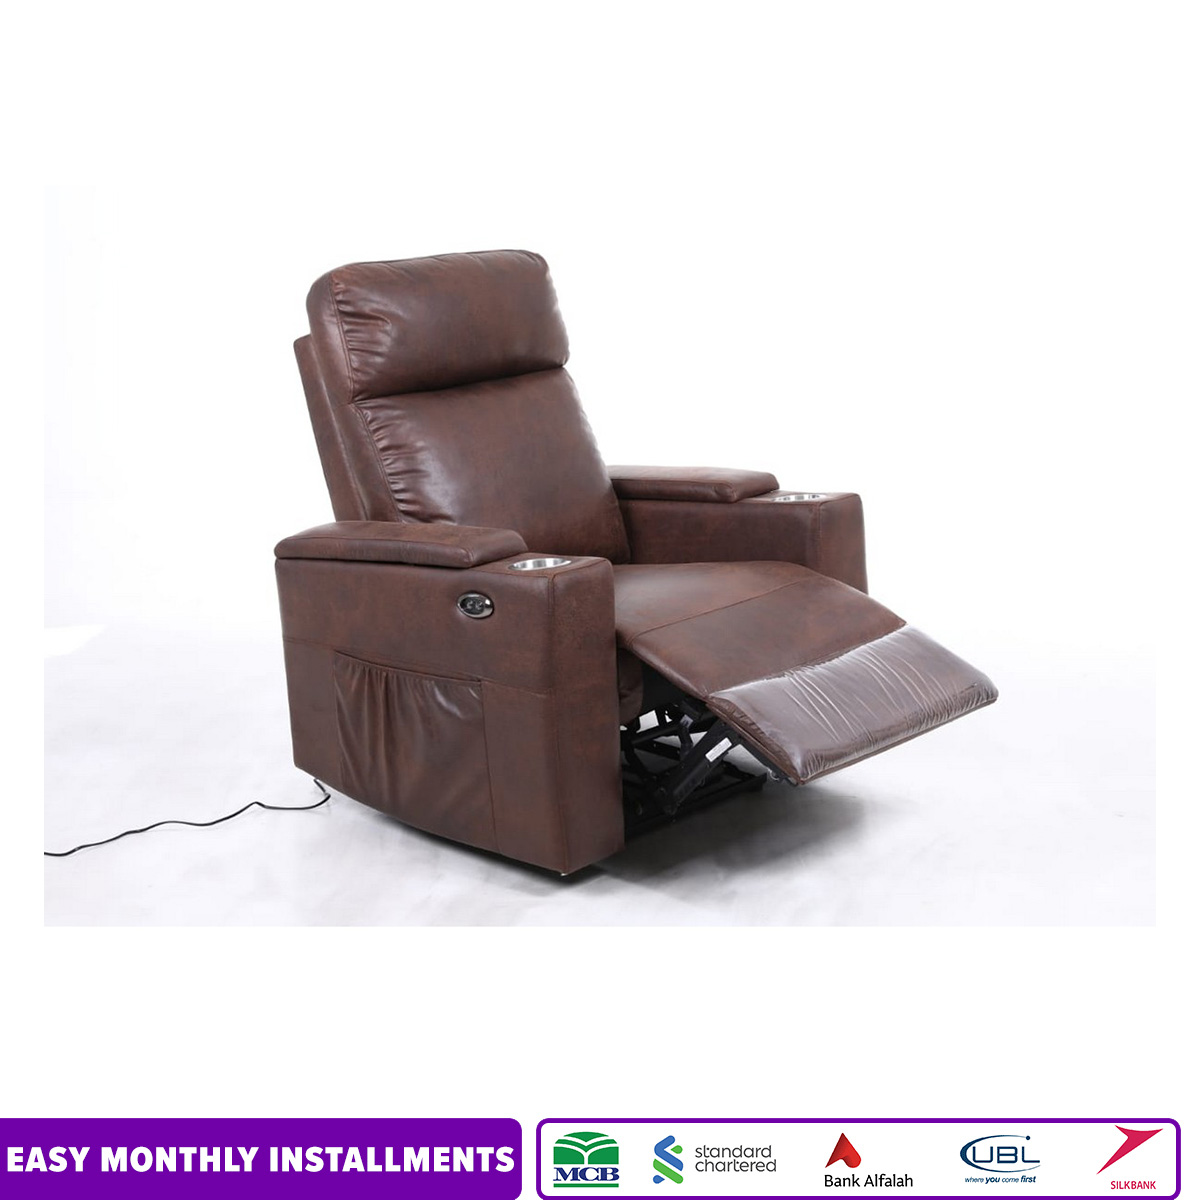 IMPORTED ELECTRIC MOTION POWER RECLINER SOFA WITH SIDE ARM STORAGE AND MOBILE CHARGING PORT